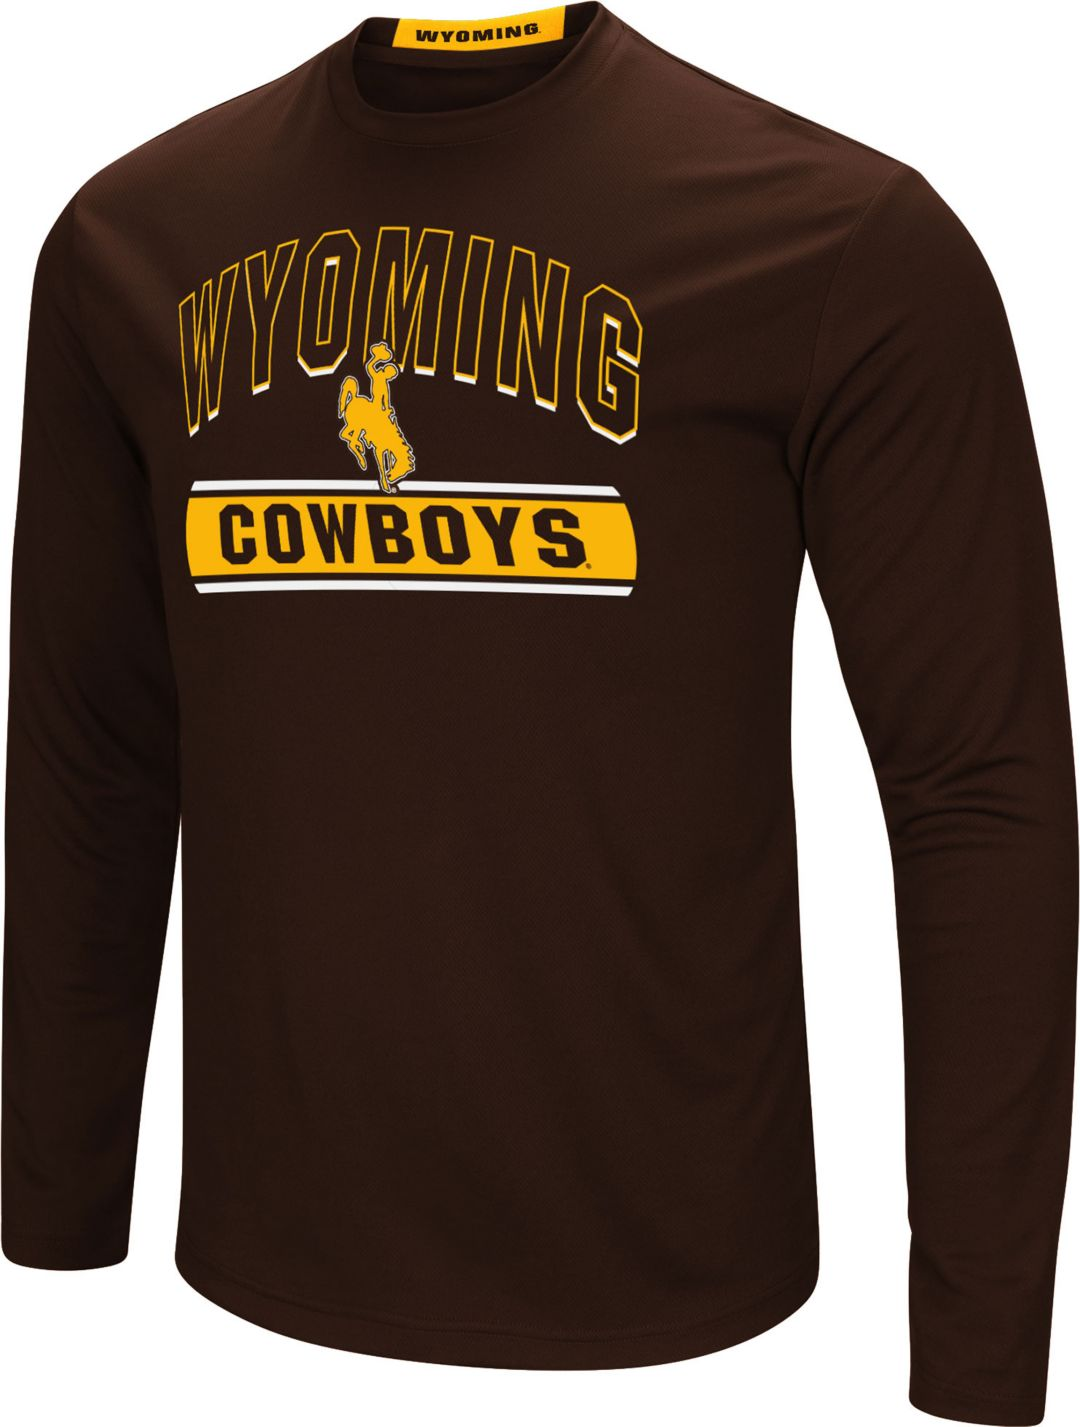 best website 96b6a 3492c Colosseum Men's Wyoming Cowboys Brown Ganges Long Sleeve T-Shirt